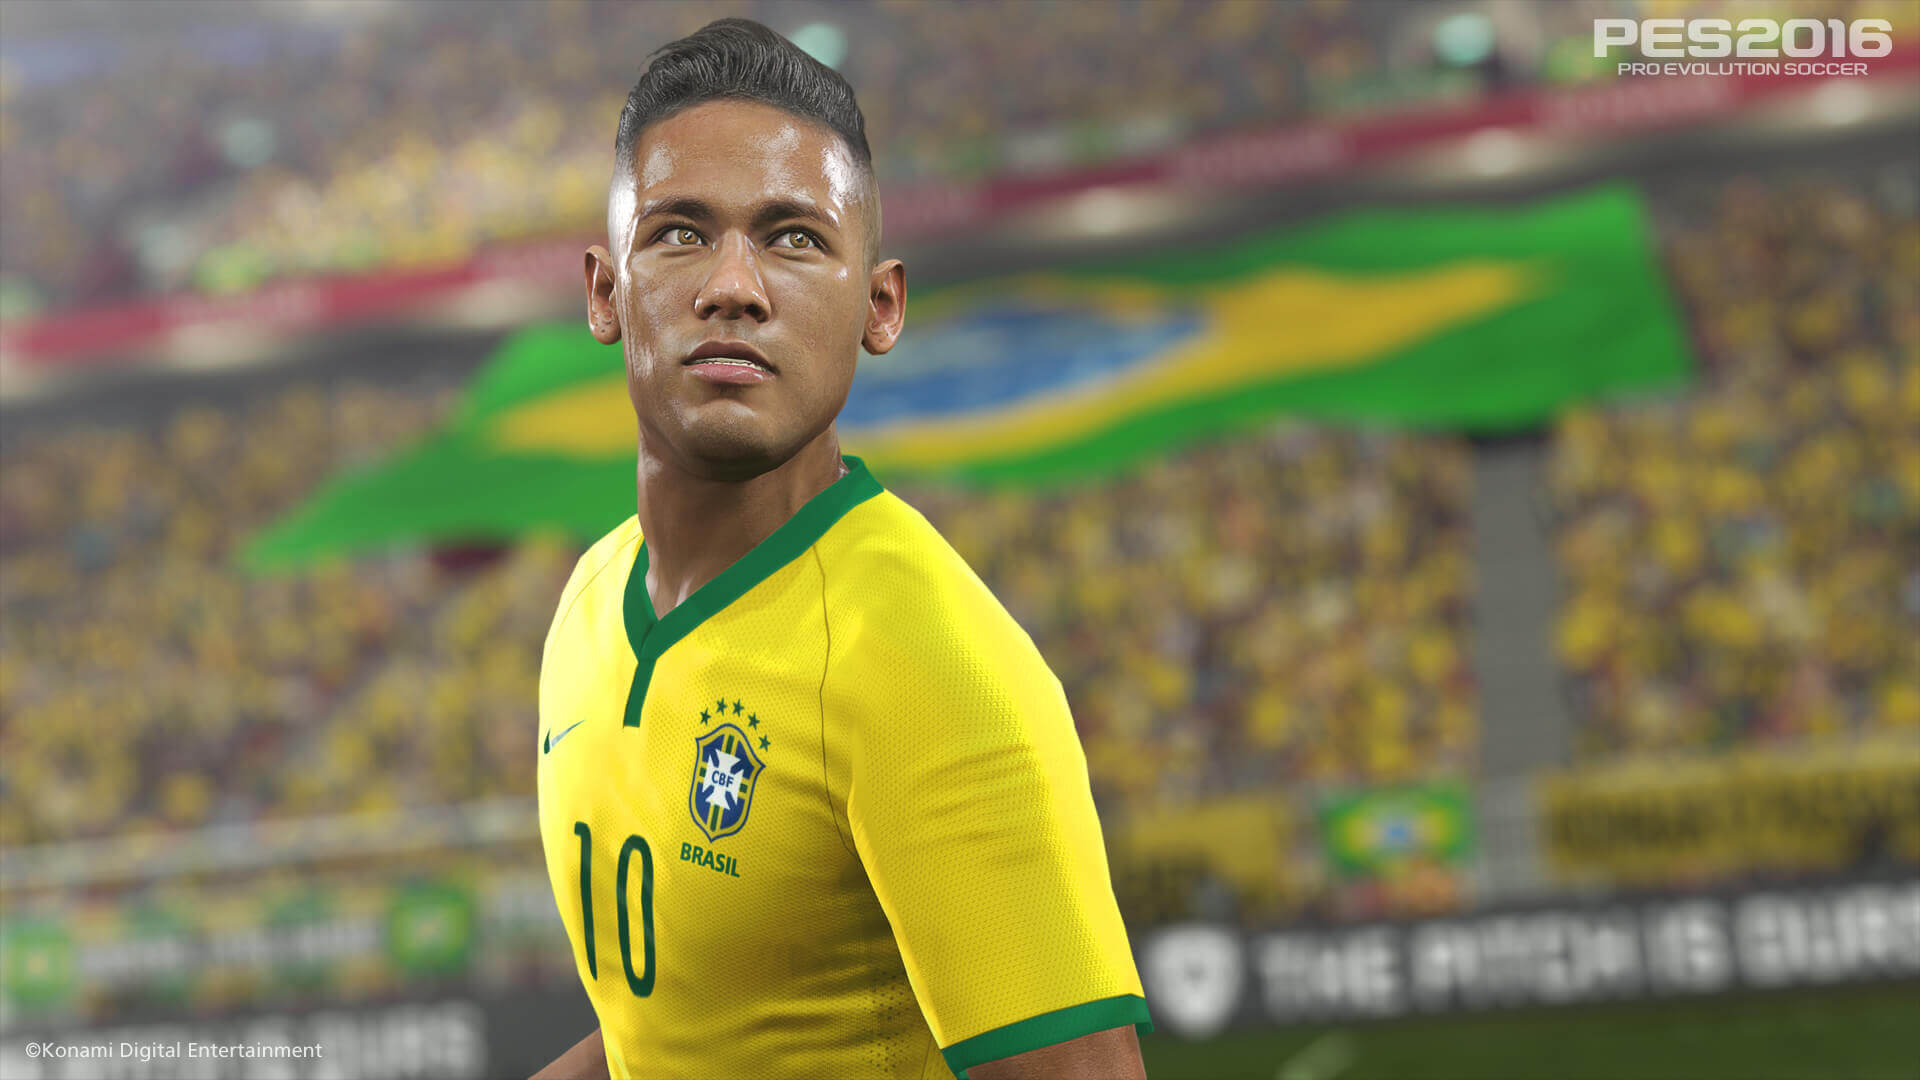 PES 2016: Details of New Gameplay and Release Date Announced